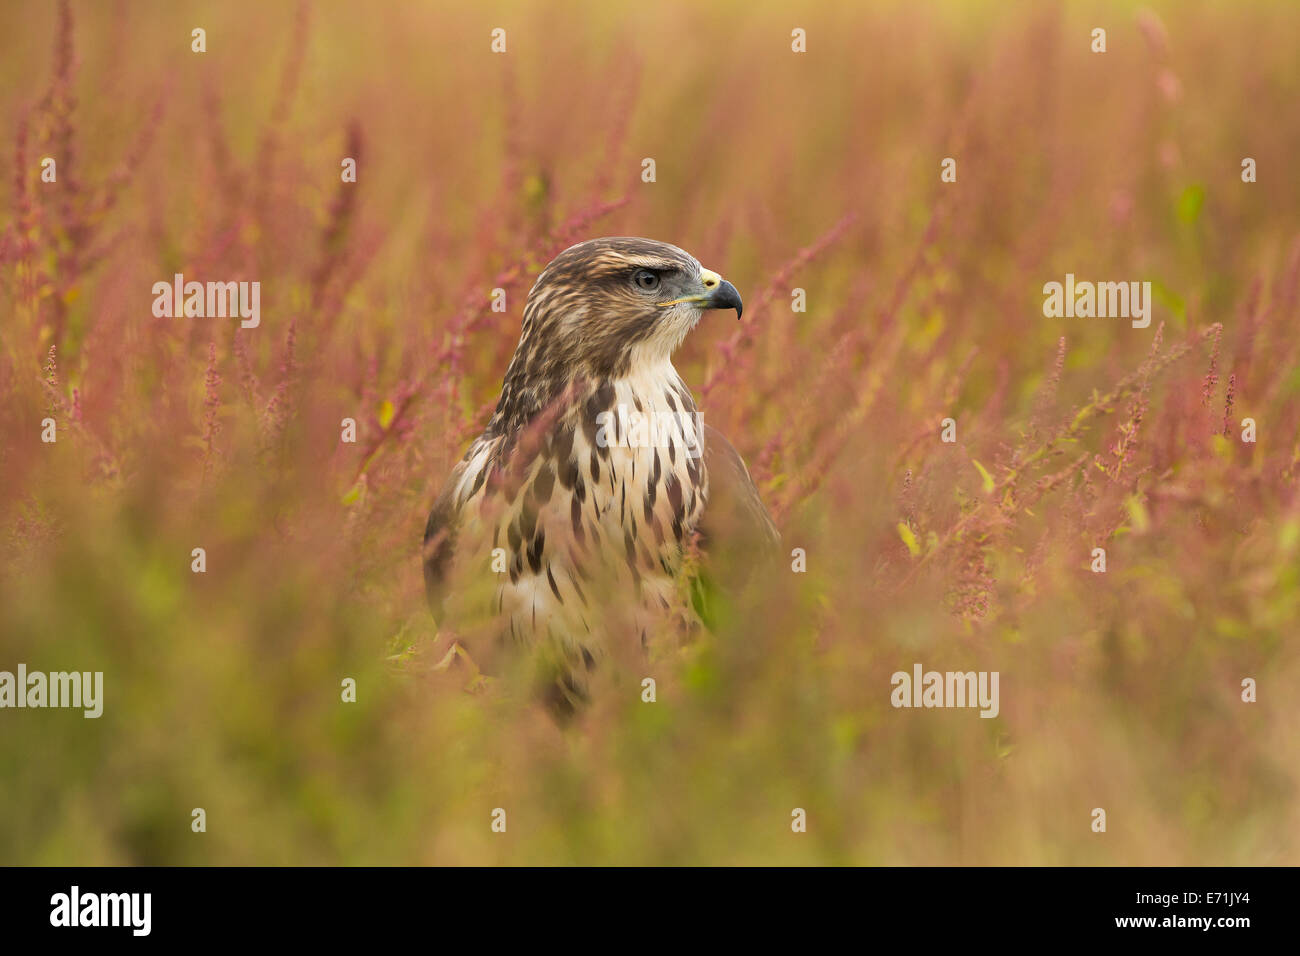 Buzzard, Buteo buteo in a field - Stock Image